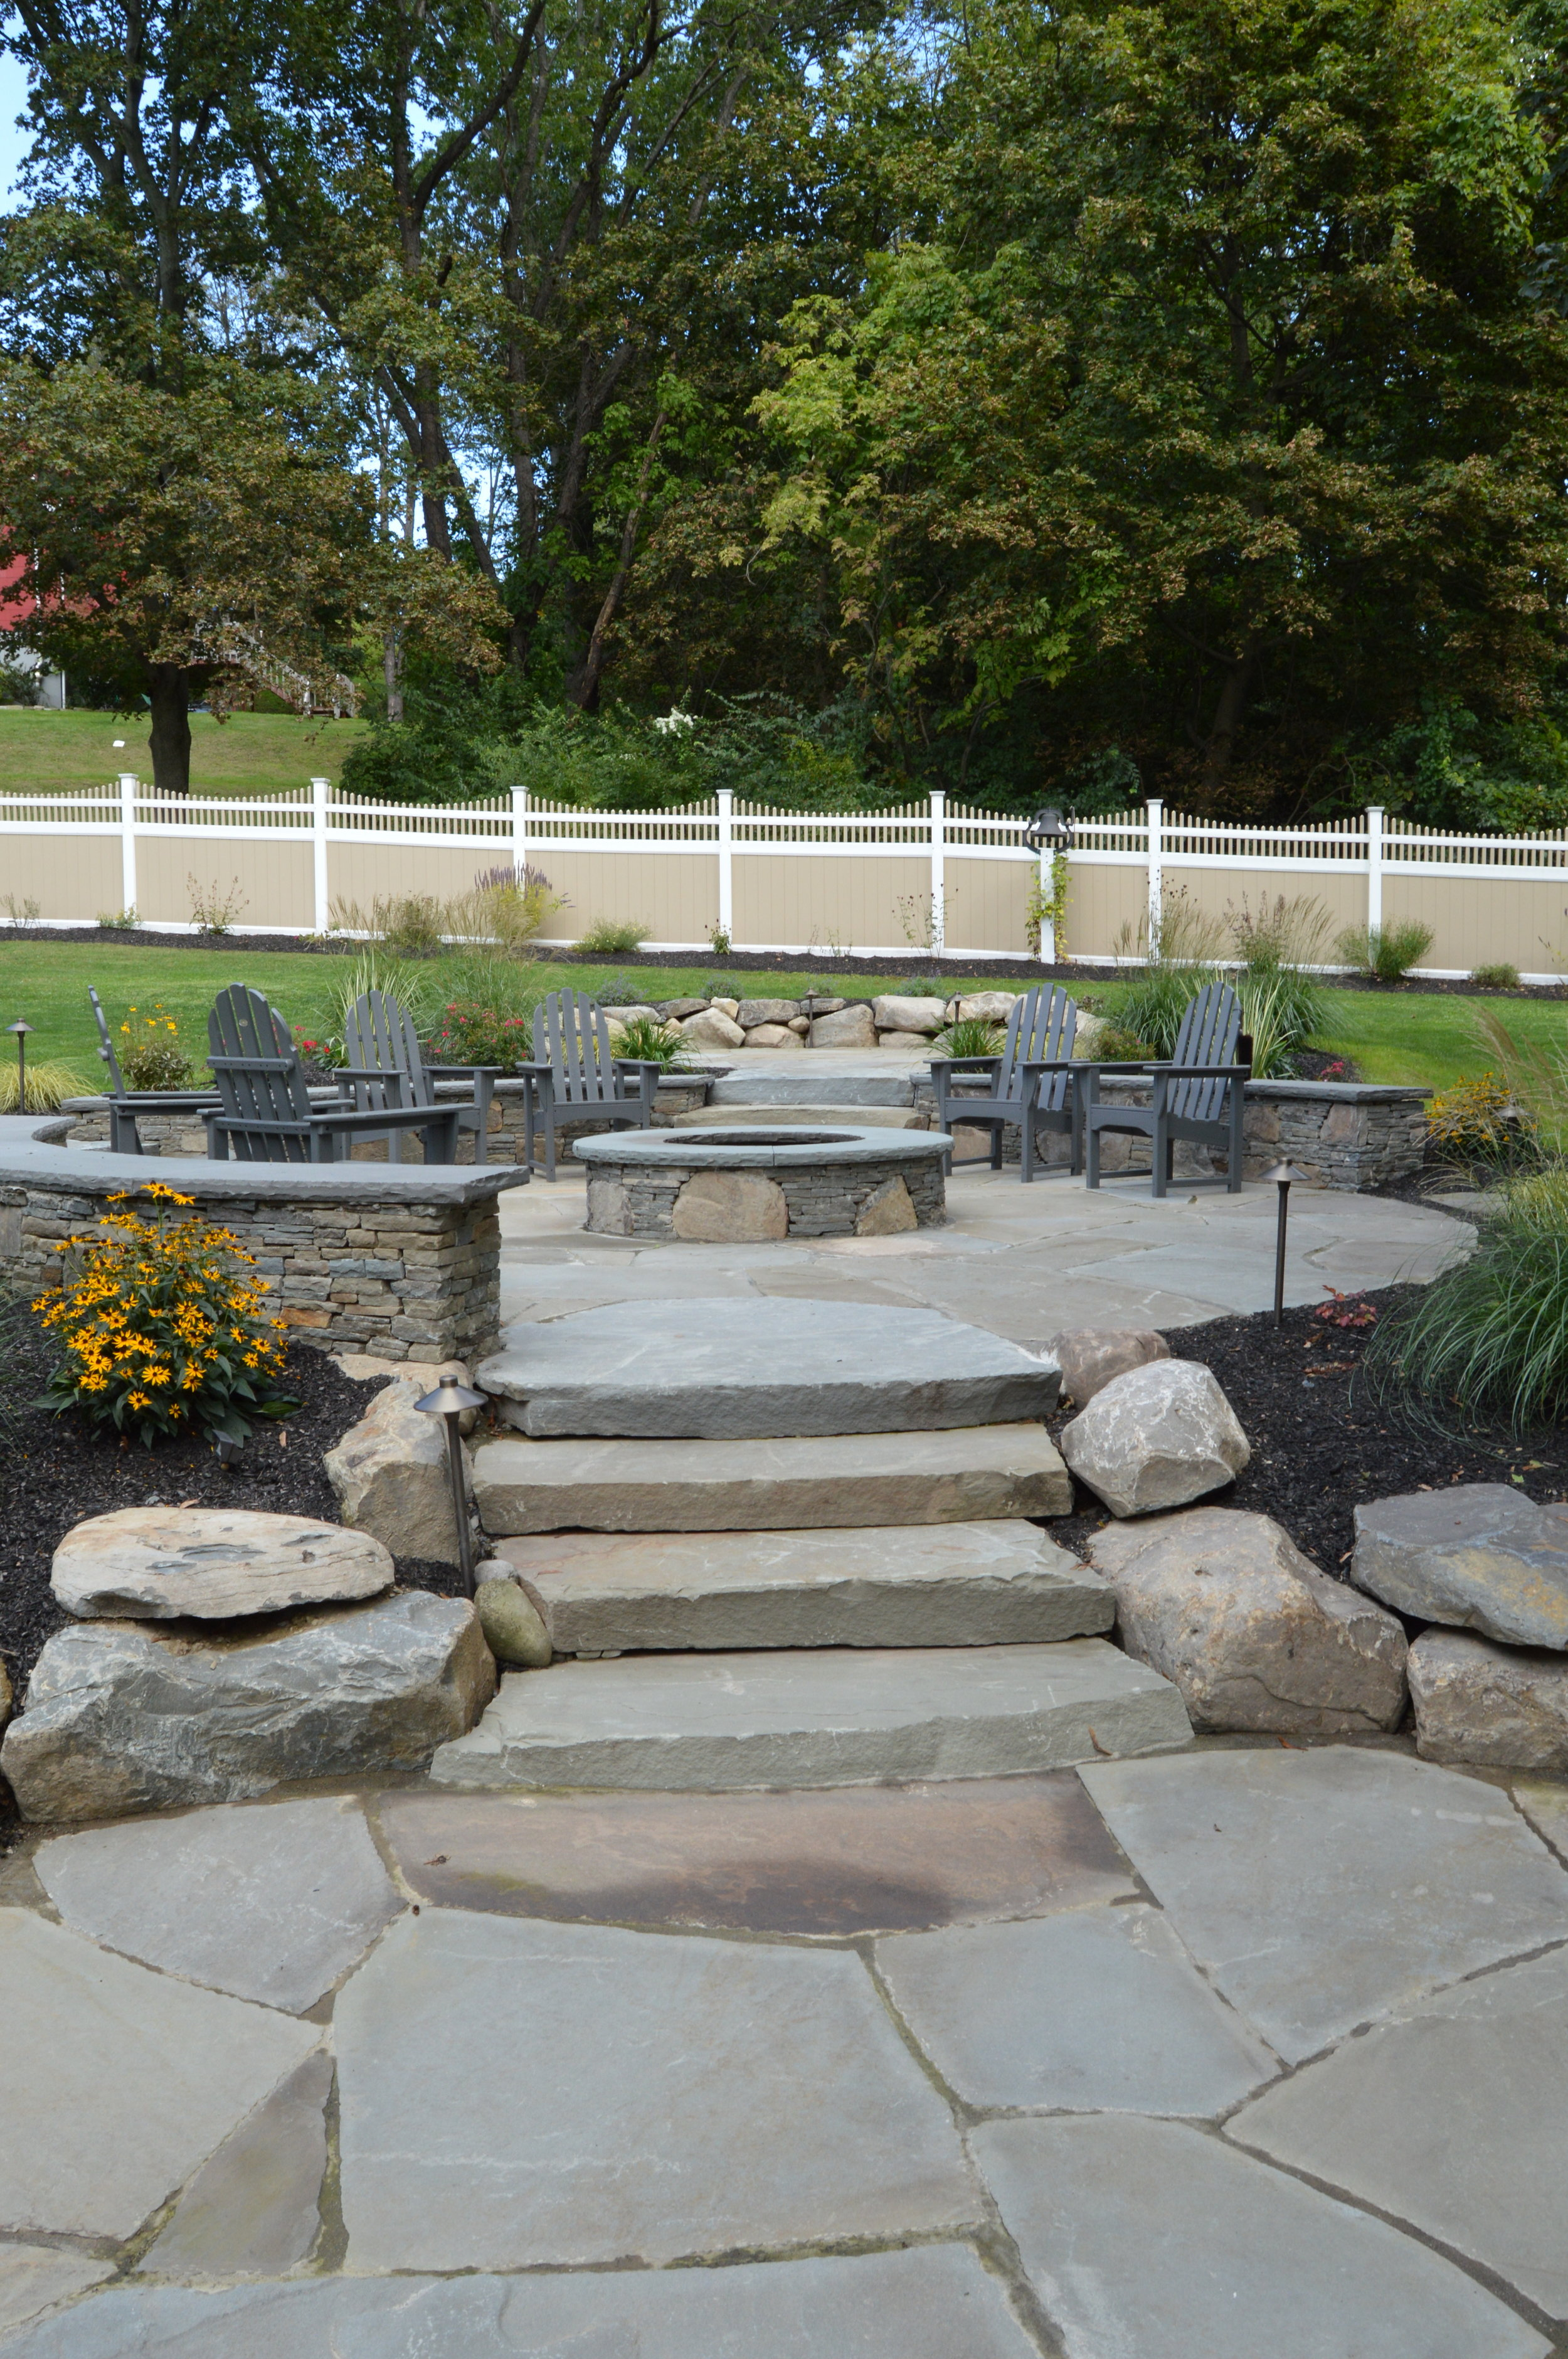 Top 3 Landscaping Ideas for Your Bethel, NY, Outdoor Patio